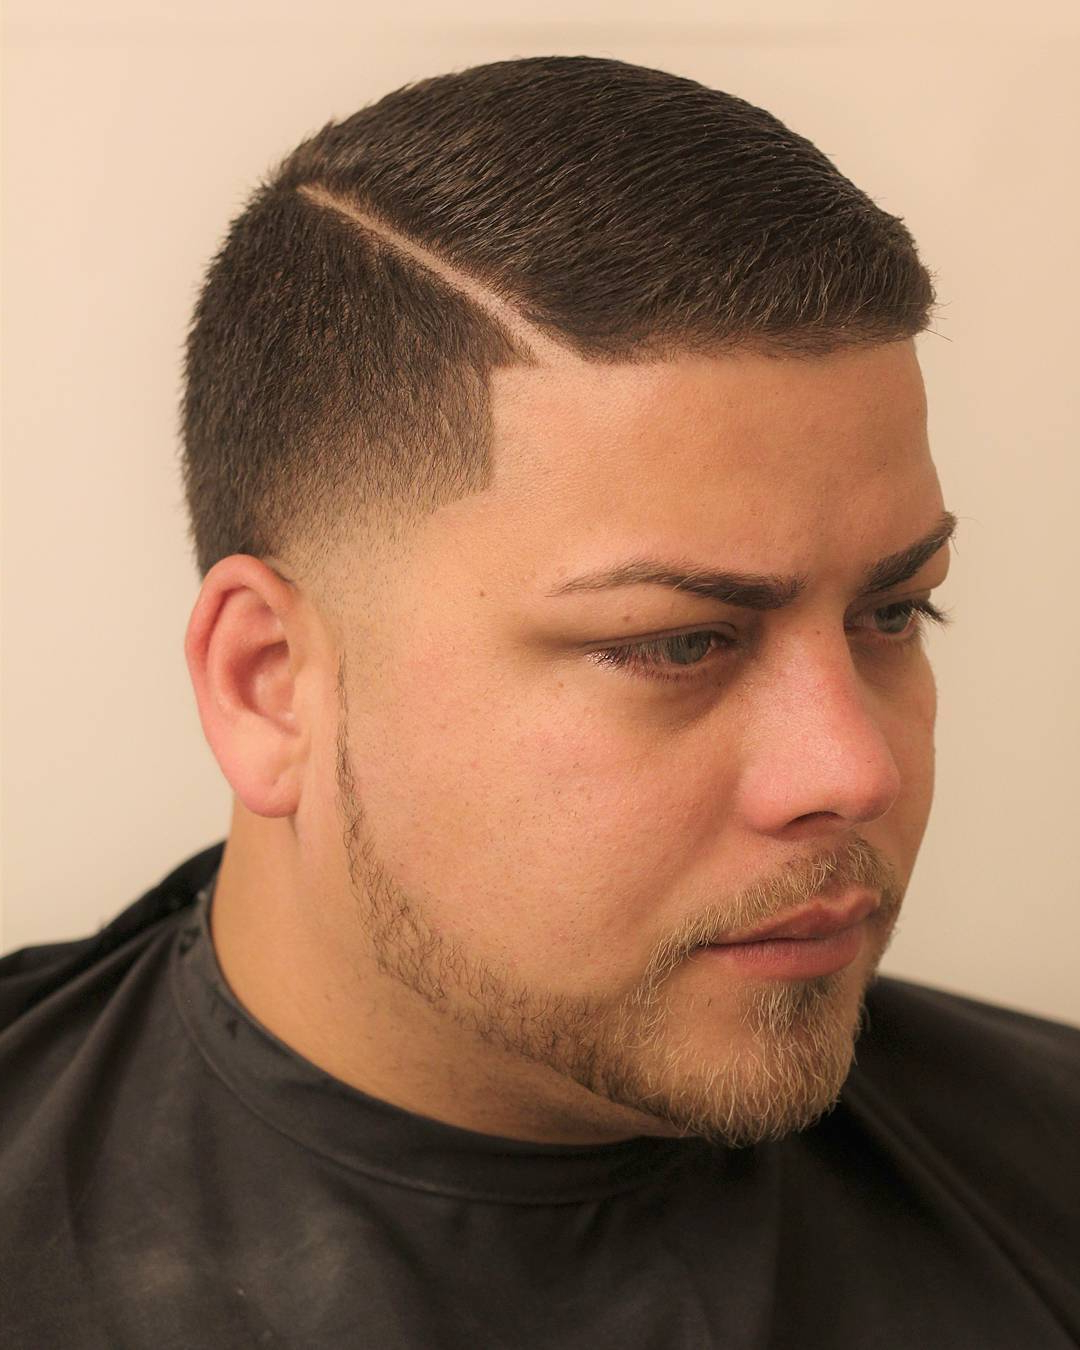 20 Very Short Haircuts For Men With Razor Cut Short Hairstyles (View 16 of 25)